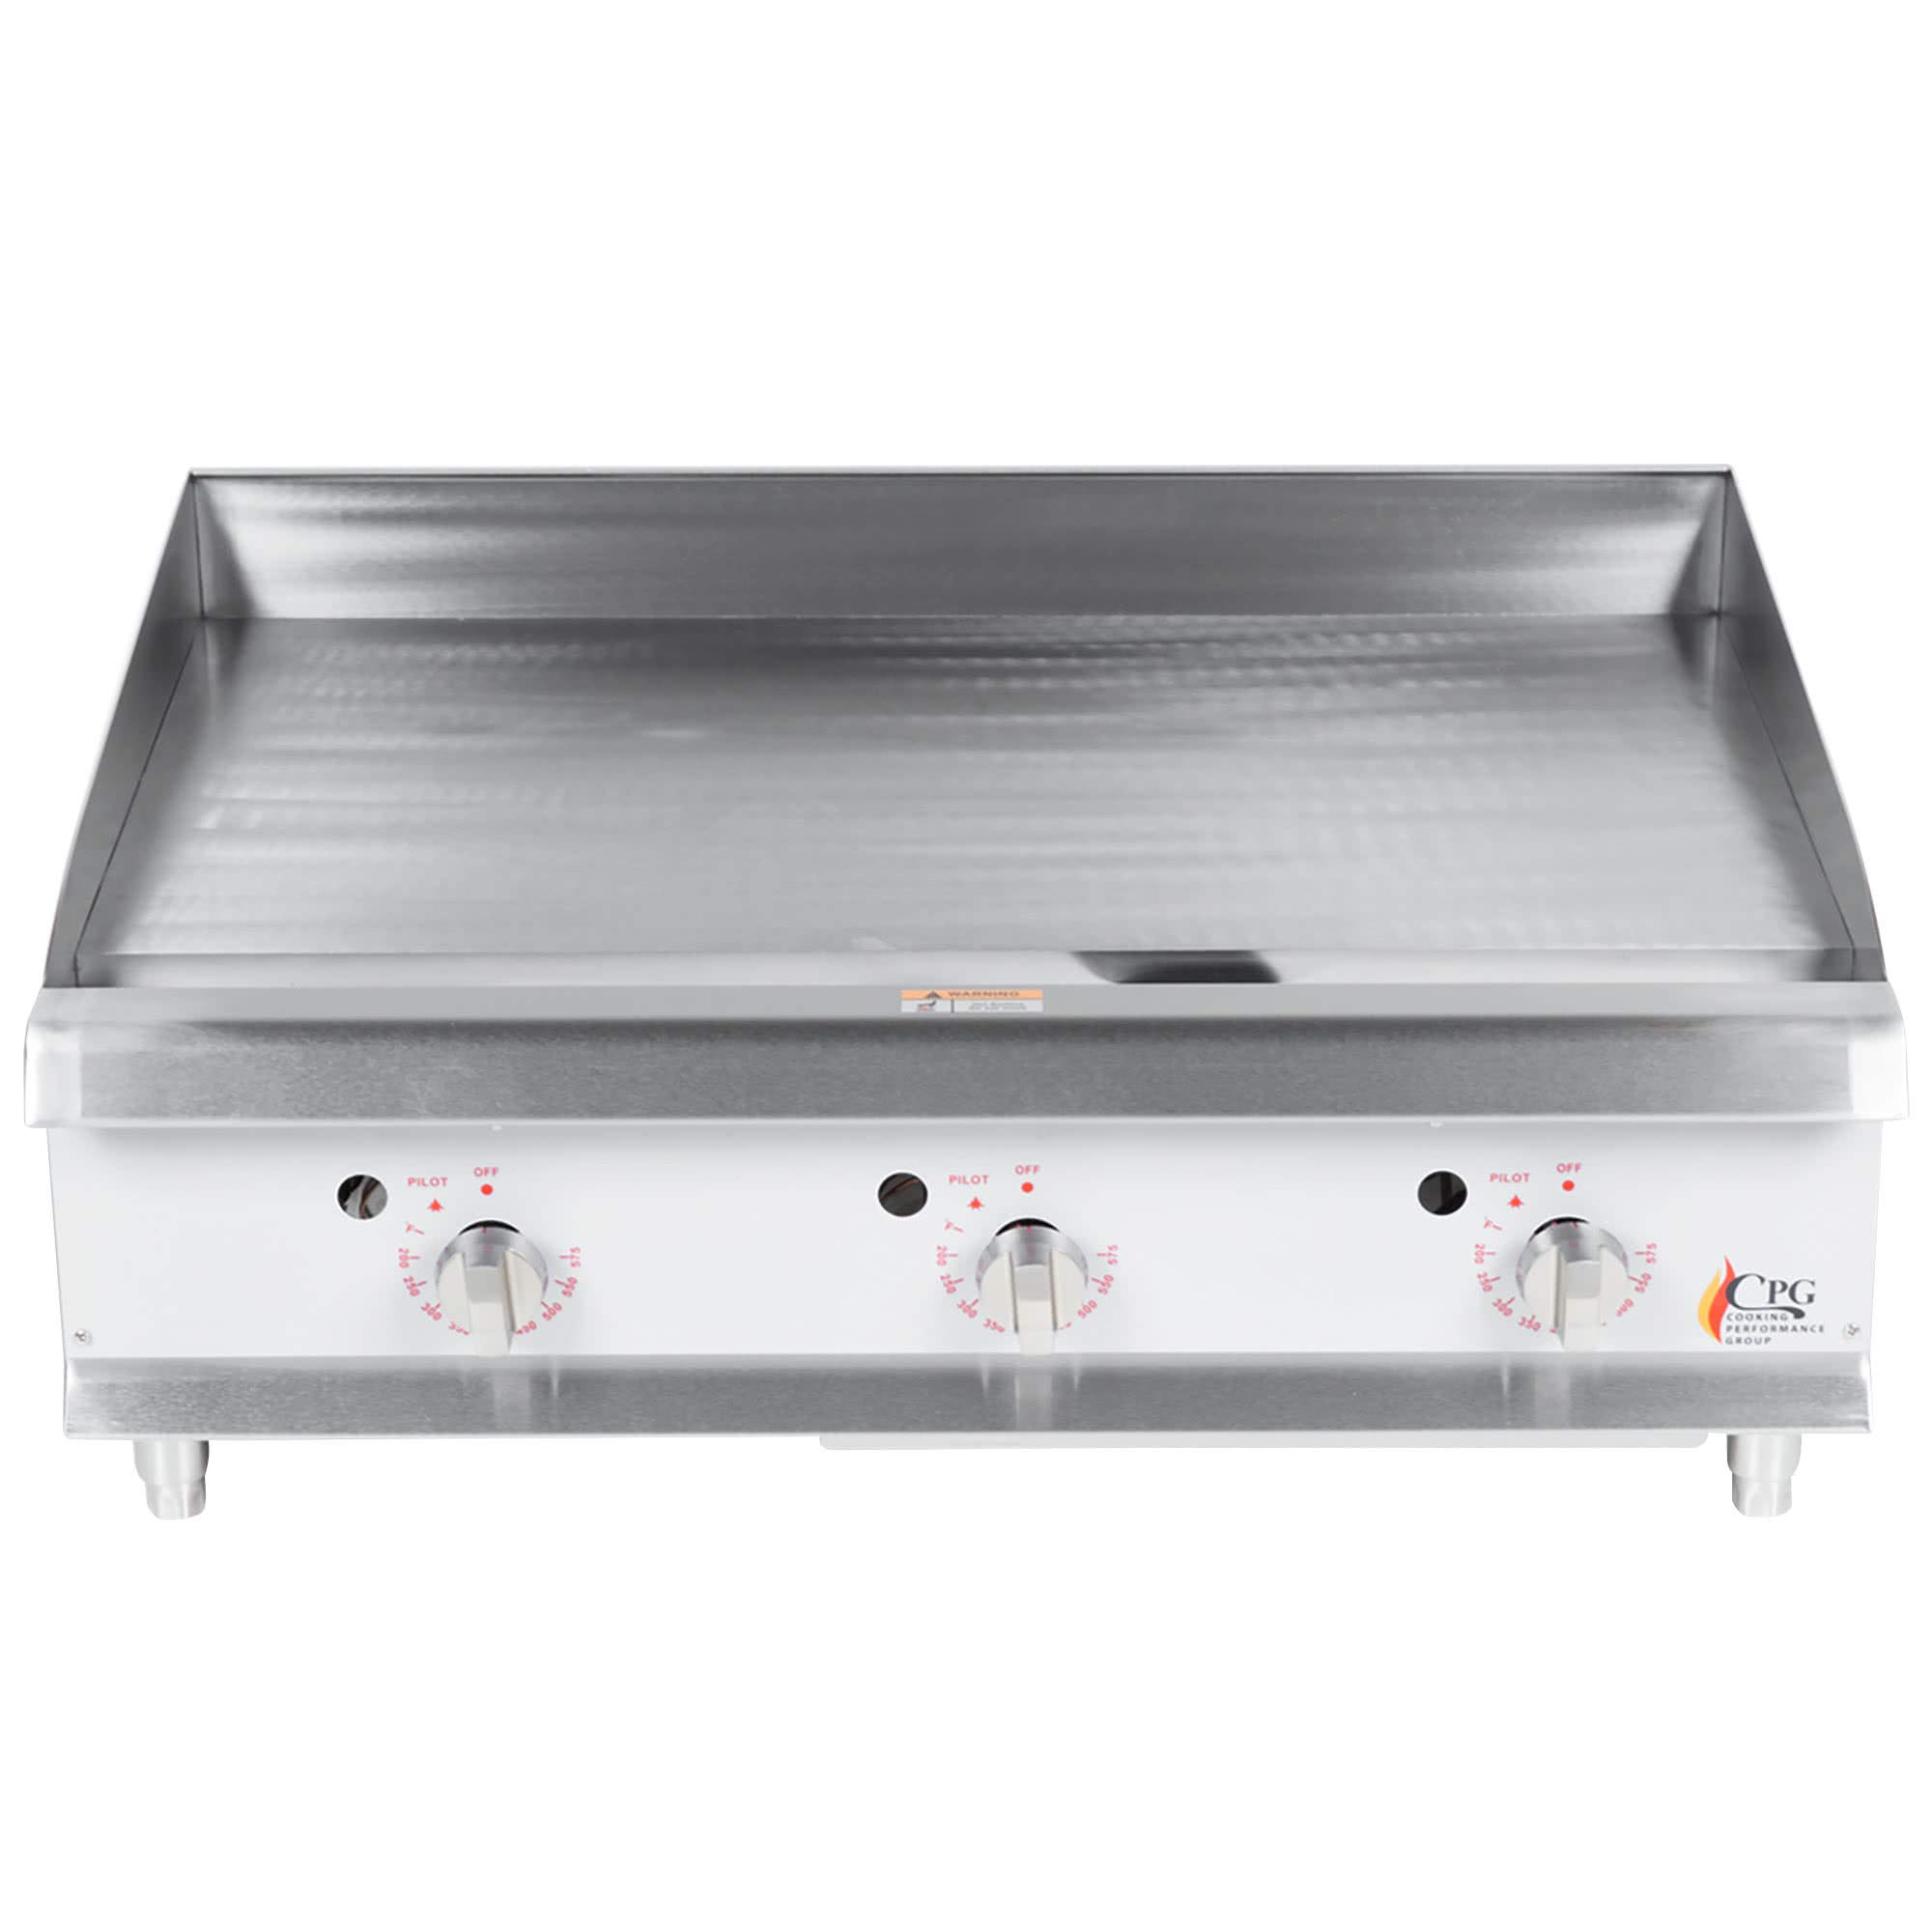 TableTop King G36T 36'' Heavy-Duty Gas Countertop Griddle with Thermostatic Controls - 90,000 BTU by TableTop King